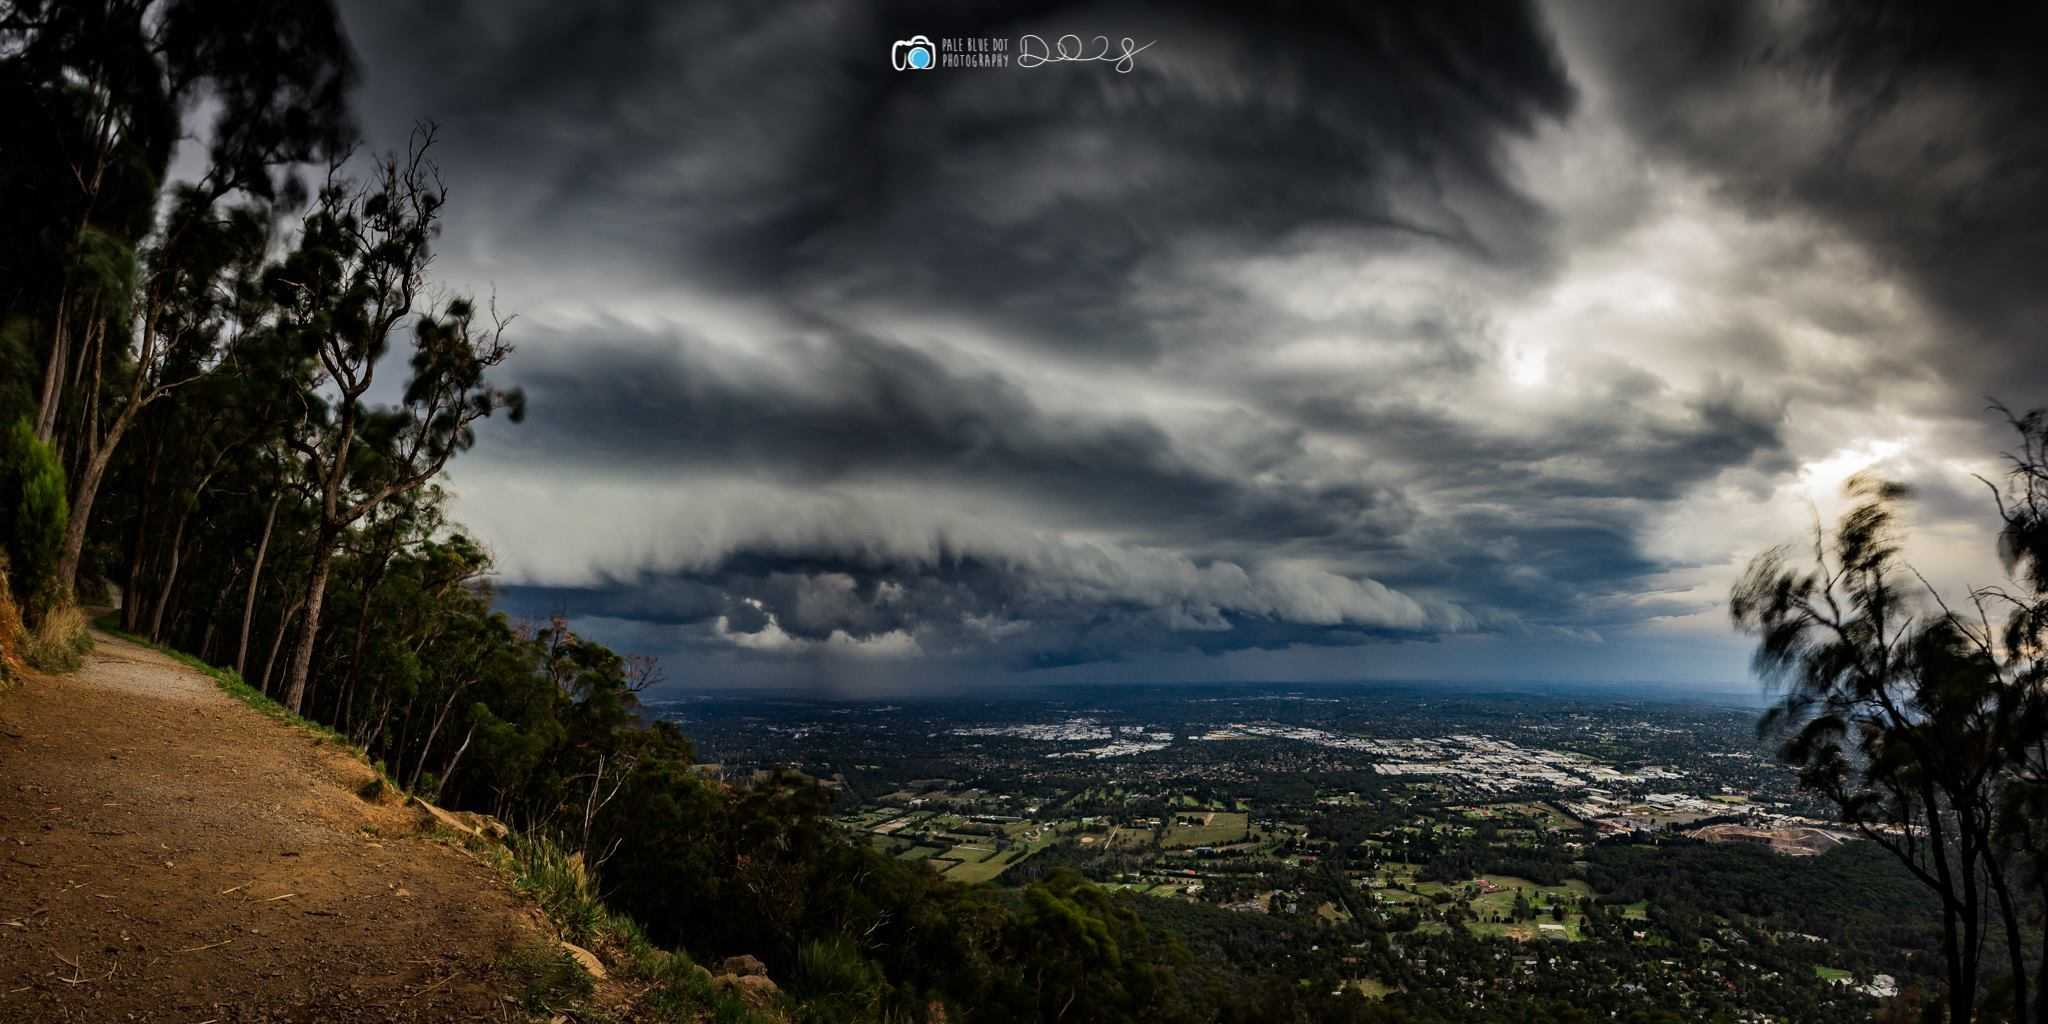 Awesome shelfie rolling across the suburbs of Melbourne, Australia yesterday... This was taken from the top of Mt Dandenong (633m). 4 x 10sec exposures stitched as a pano. It's been a lame storm season here down under, so I was stoked to catch this.